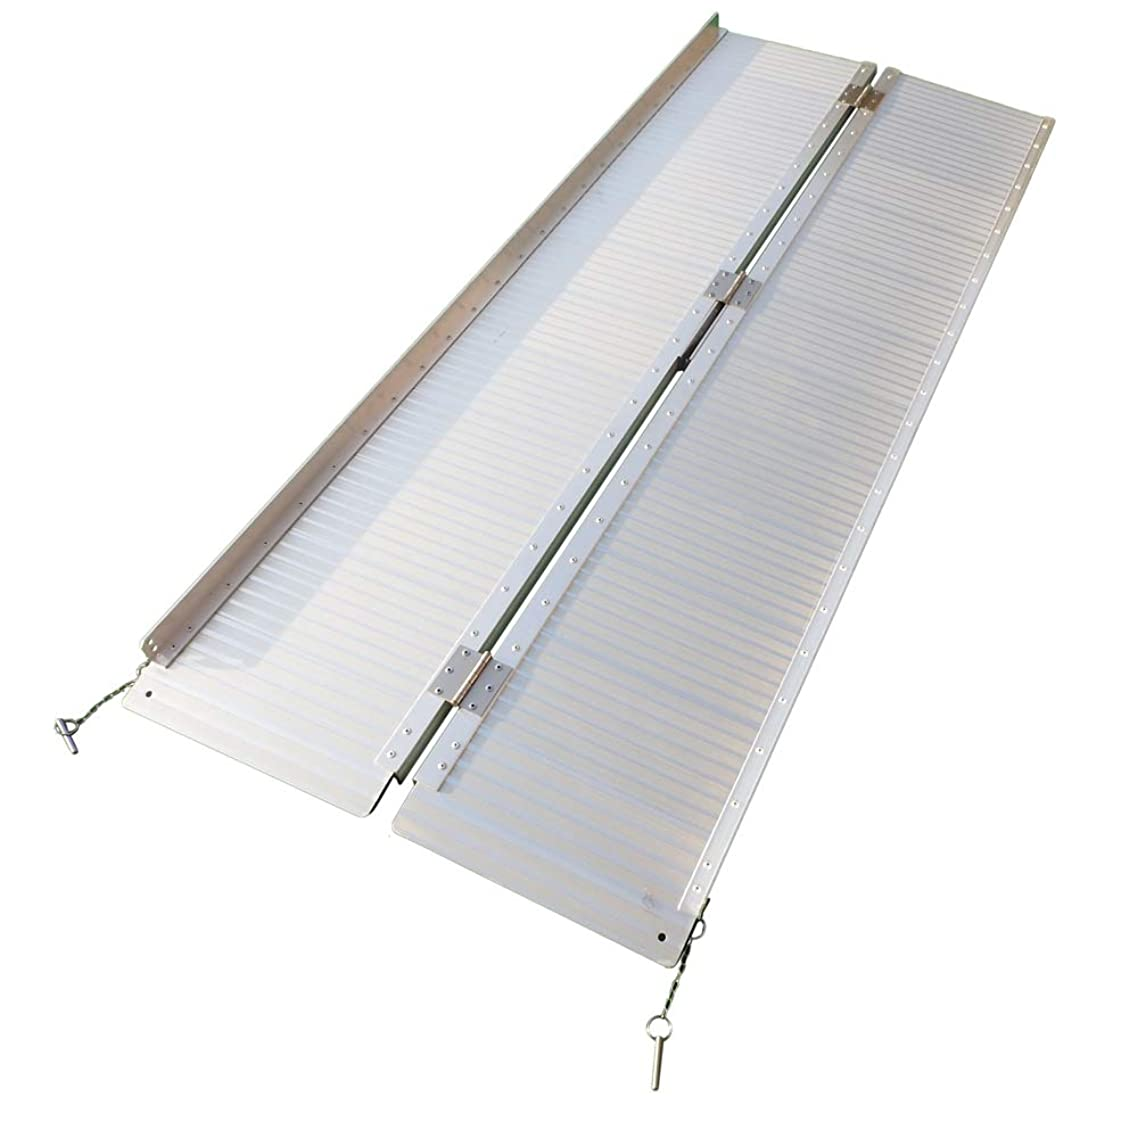 Goujxcy Threshold Ramps,6FT Portable Folding Aluminum Wheelchair Threshold Ramp with Ribbed Surface and Carrying Handle